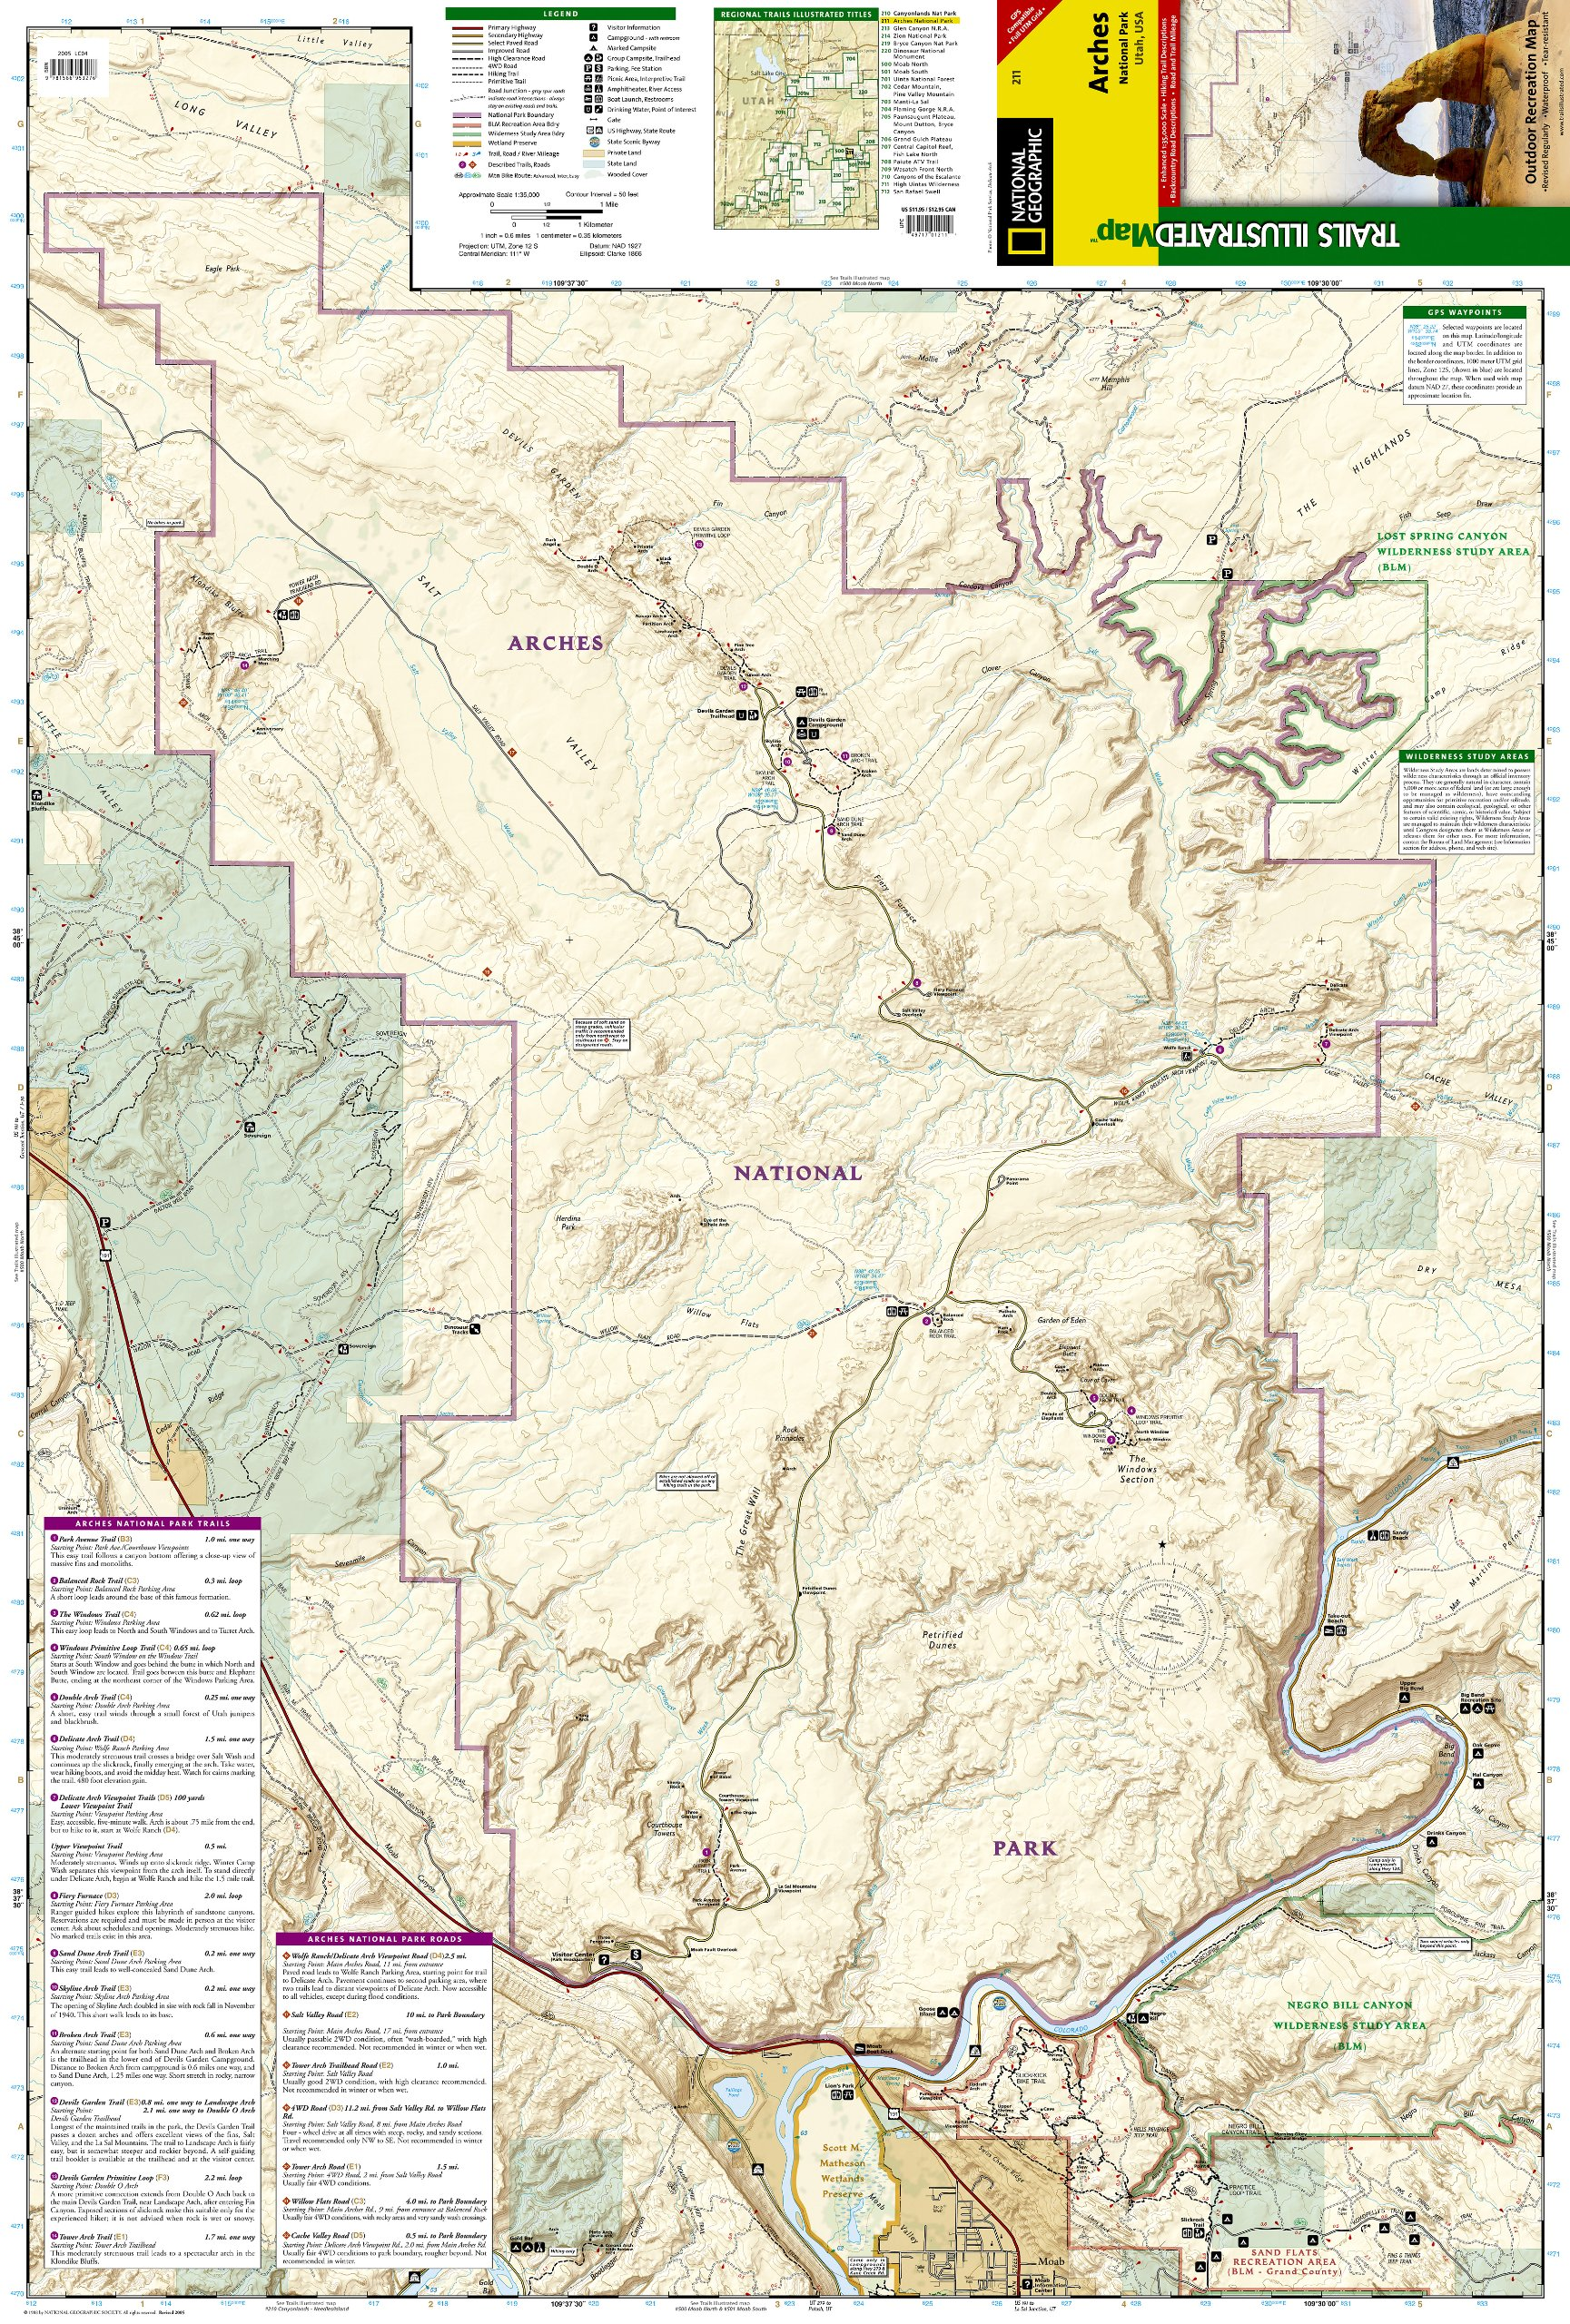 Arches National Park National Geographic Trails Illustrated Map